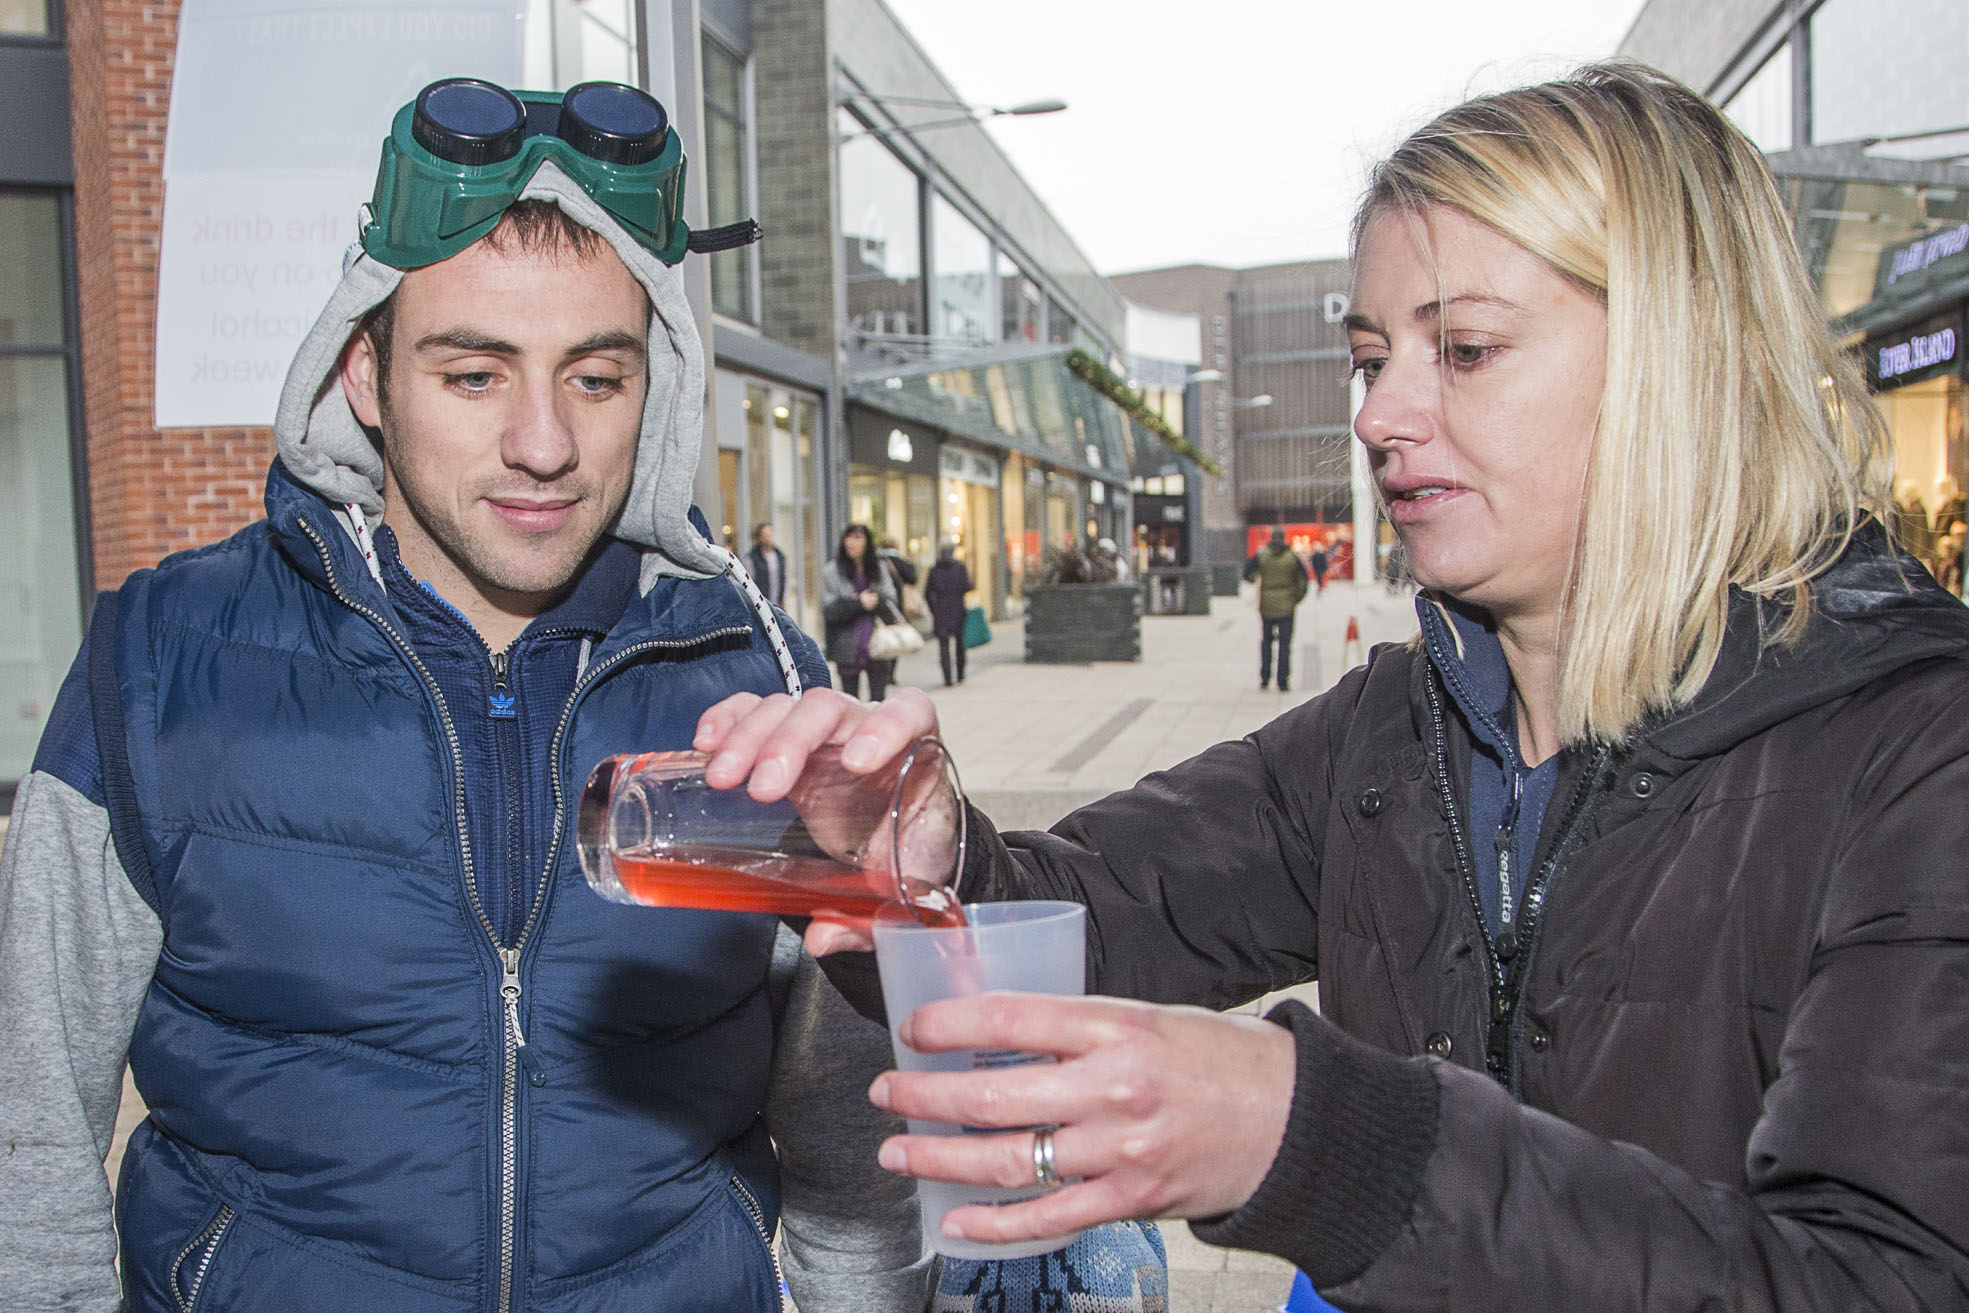 Wrexham shoppers tackle beer goggle challenge